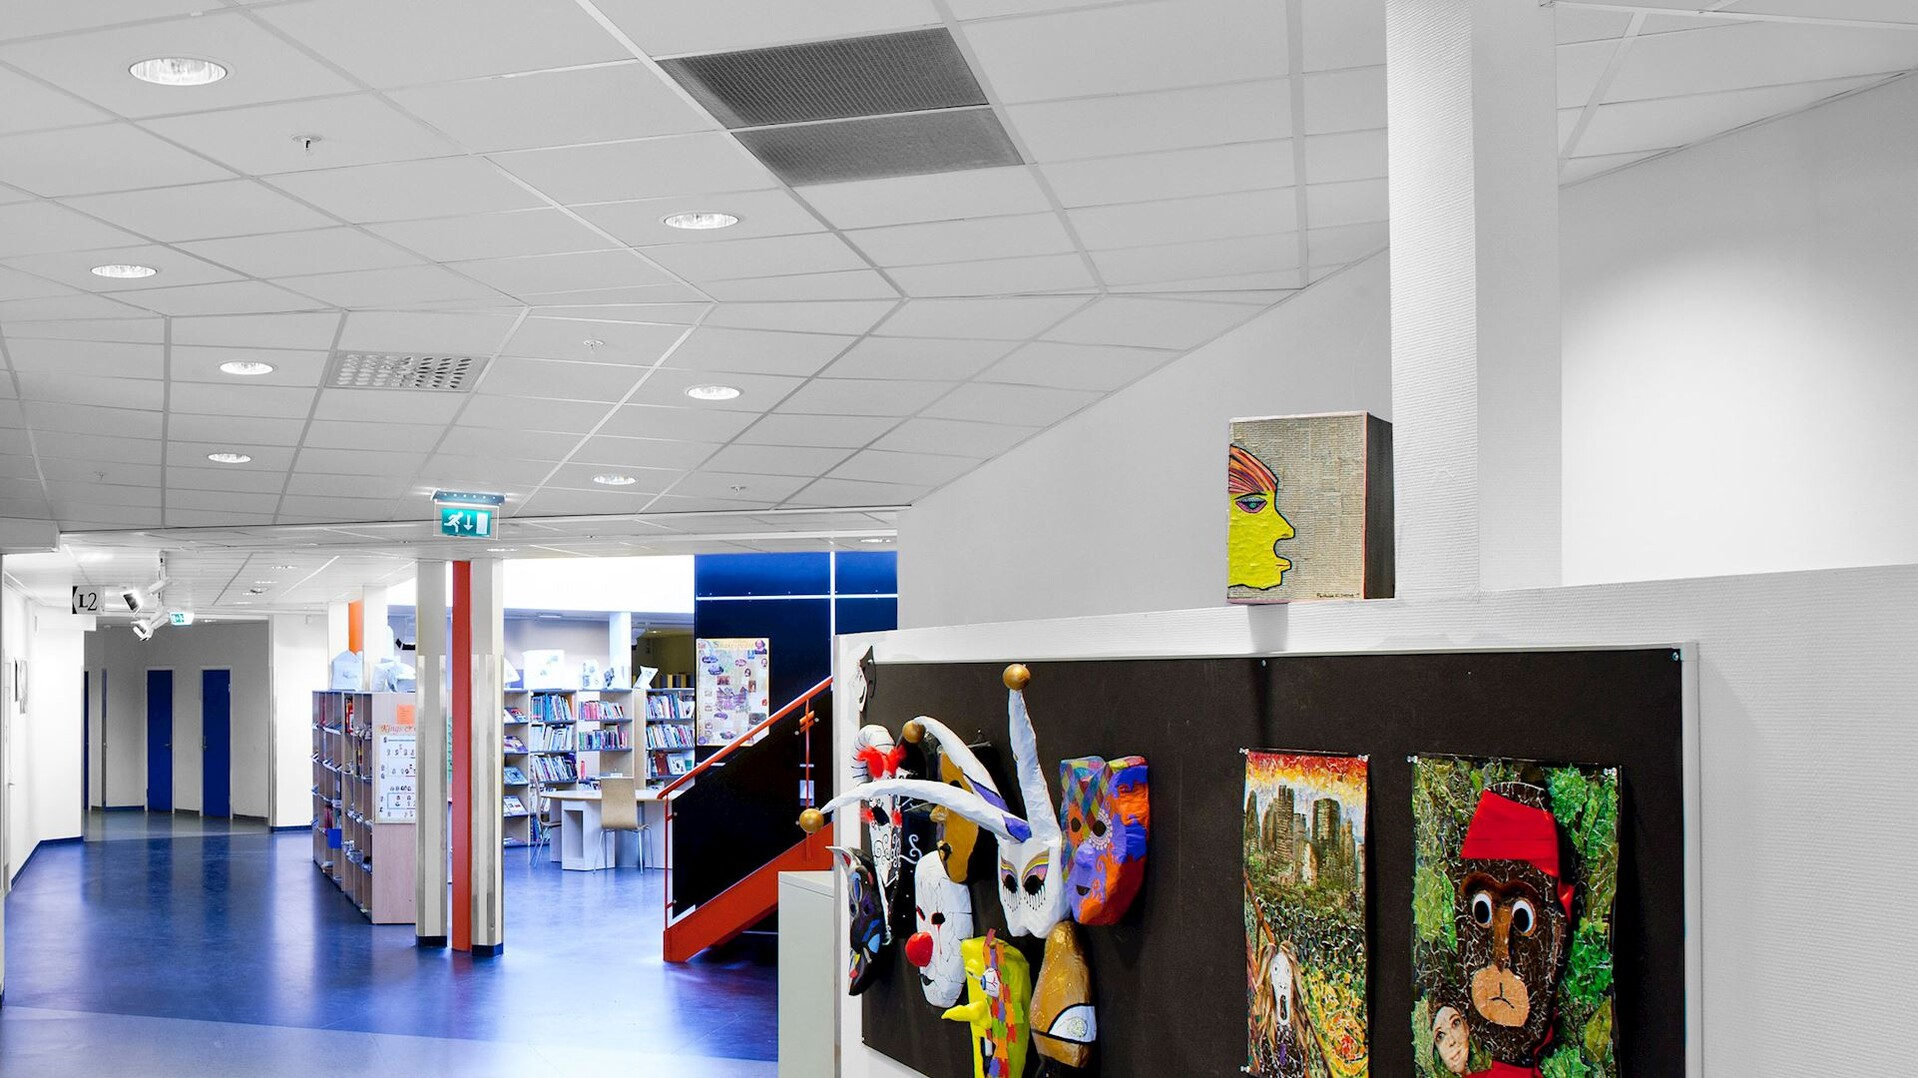 Acoustic ceiling with Rockfon Tropic sound absorbing ceiling tiles